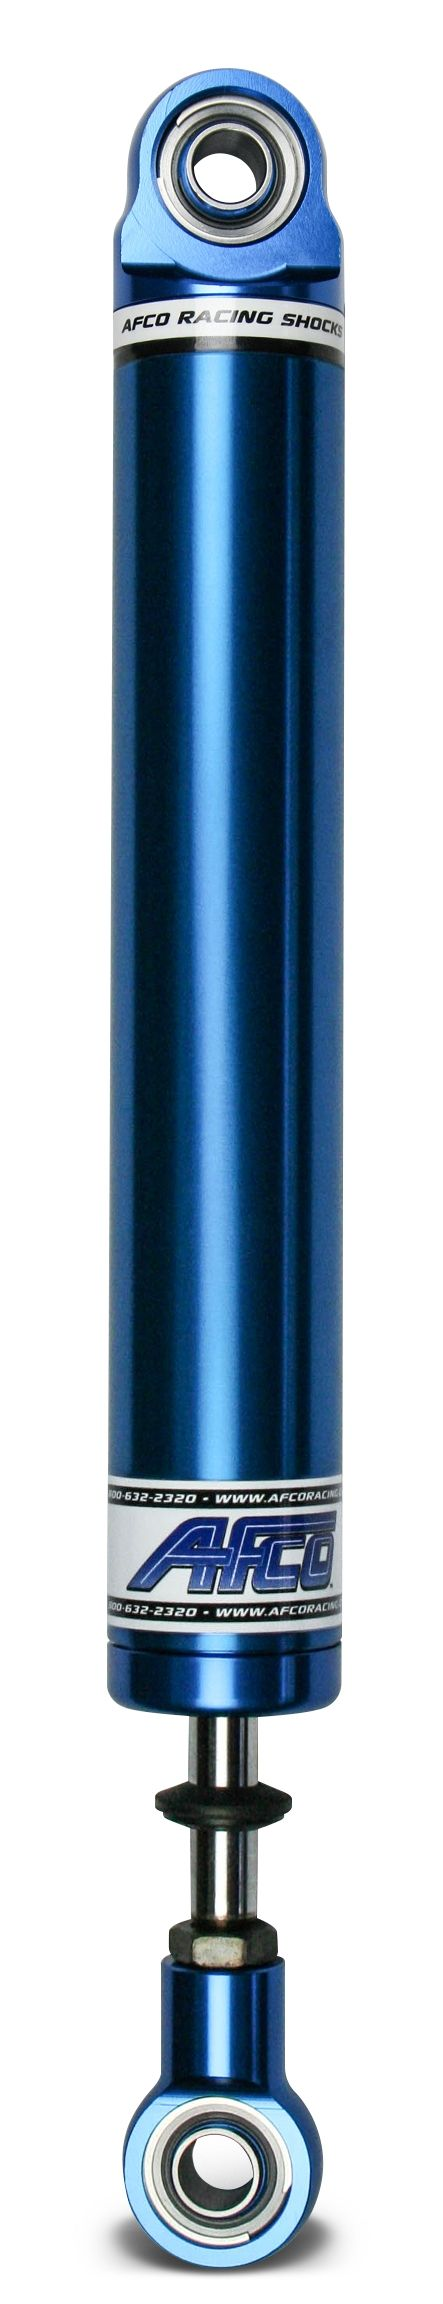 AFCO 1695-6S Aluminum Shock Twin Tube 16 Series 9